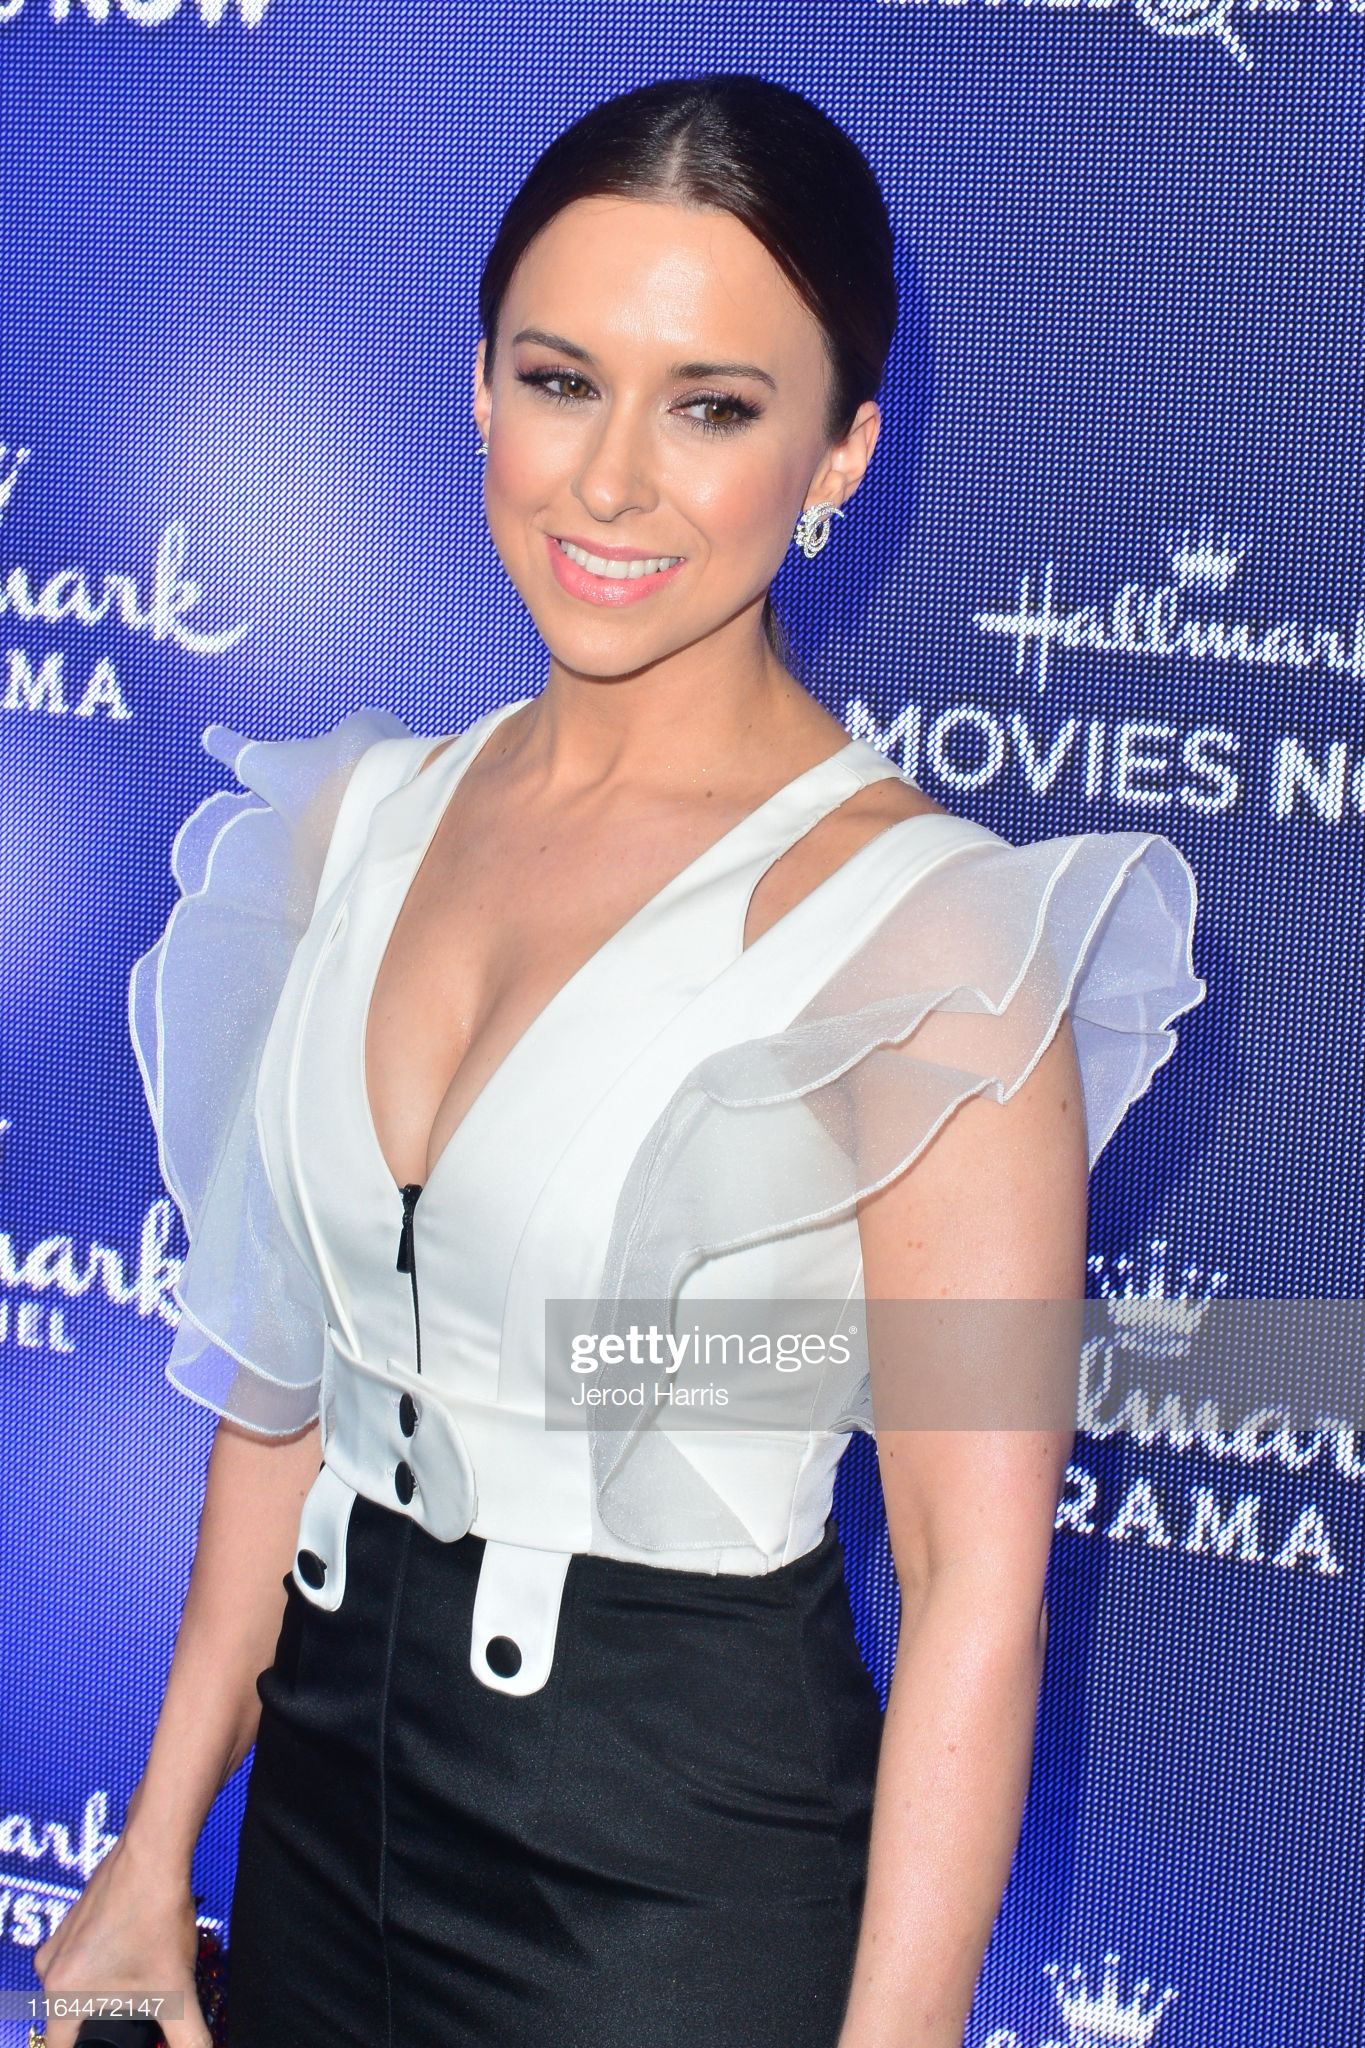 gettyimages-1164472147-2048x2048.jpg